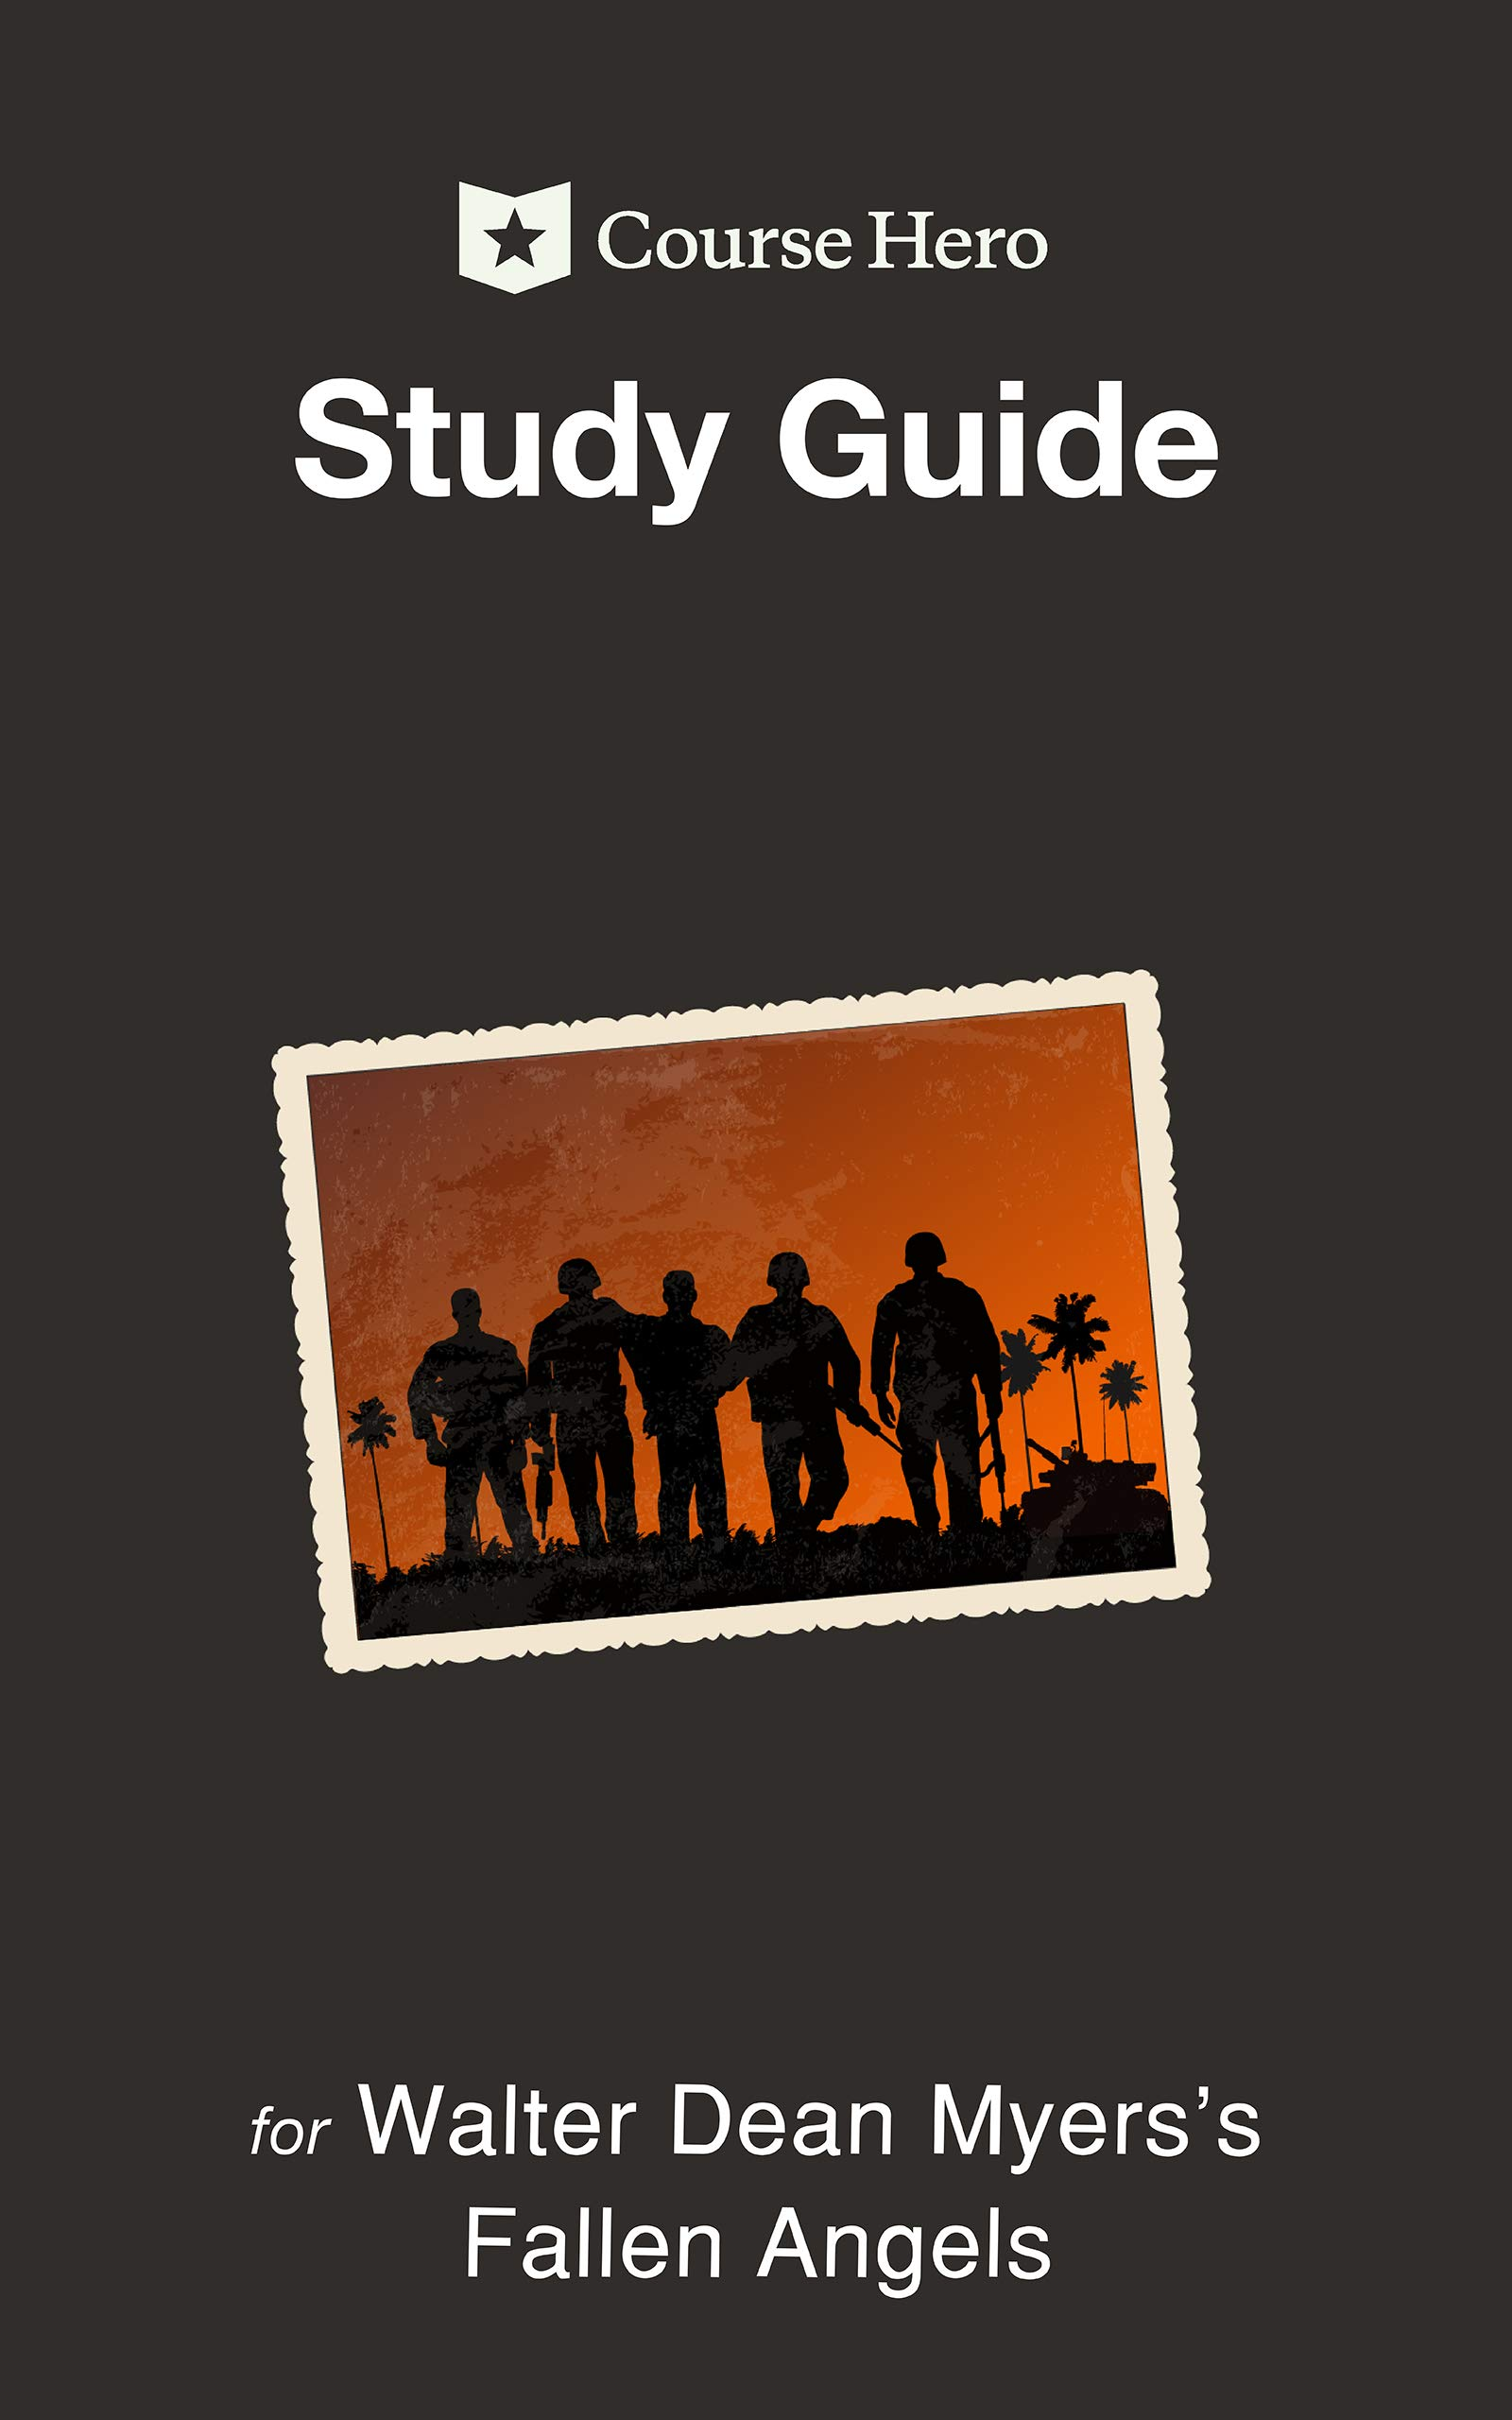 Study Guide for Walter Dean Myers's Fallen Angels